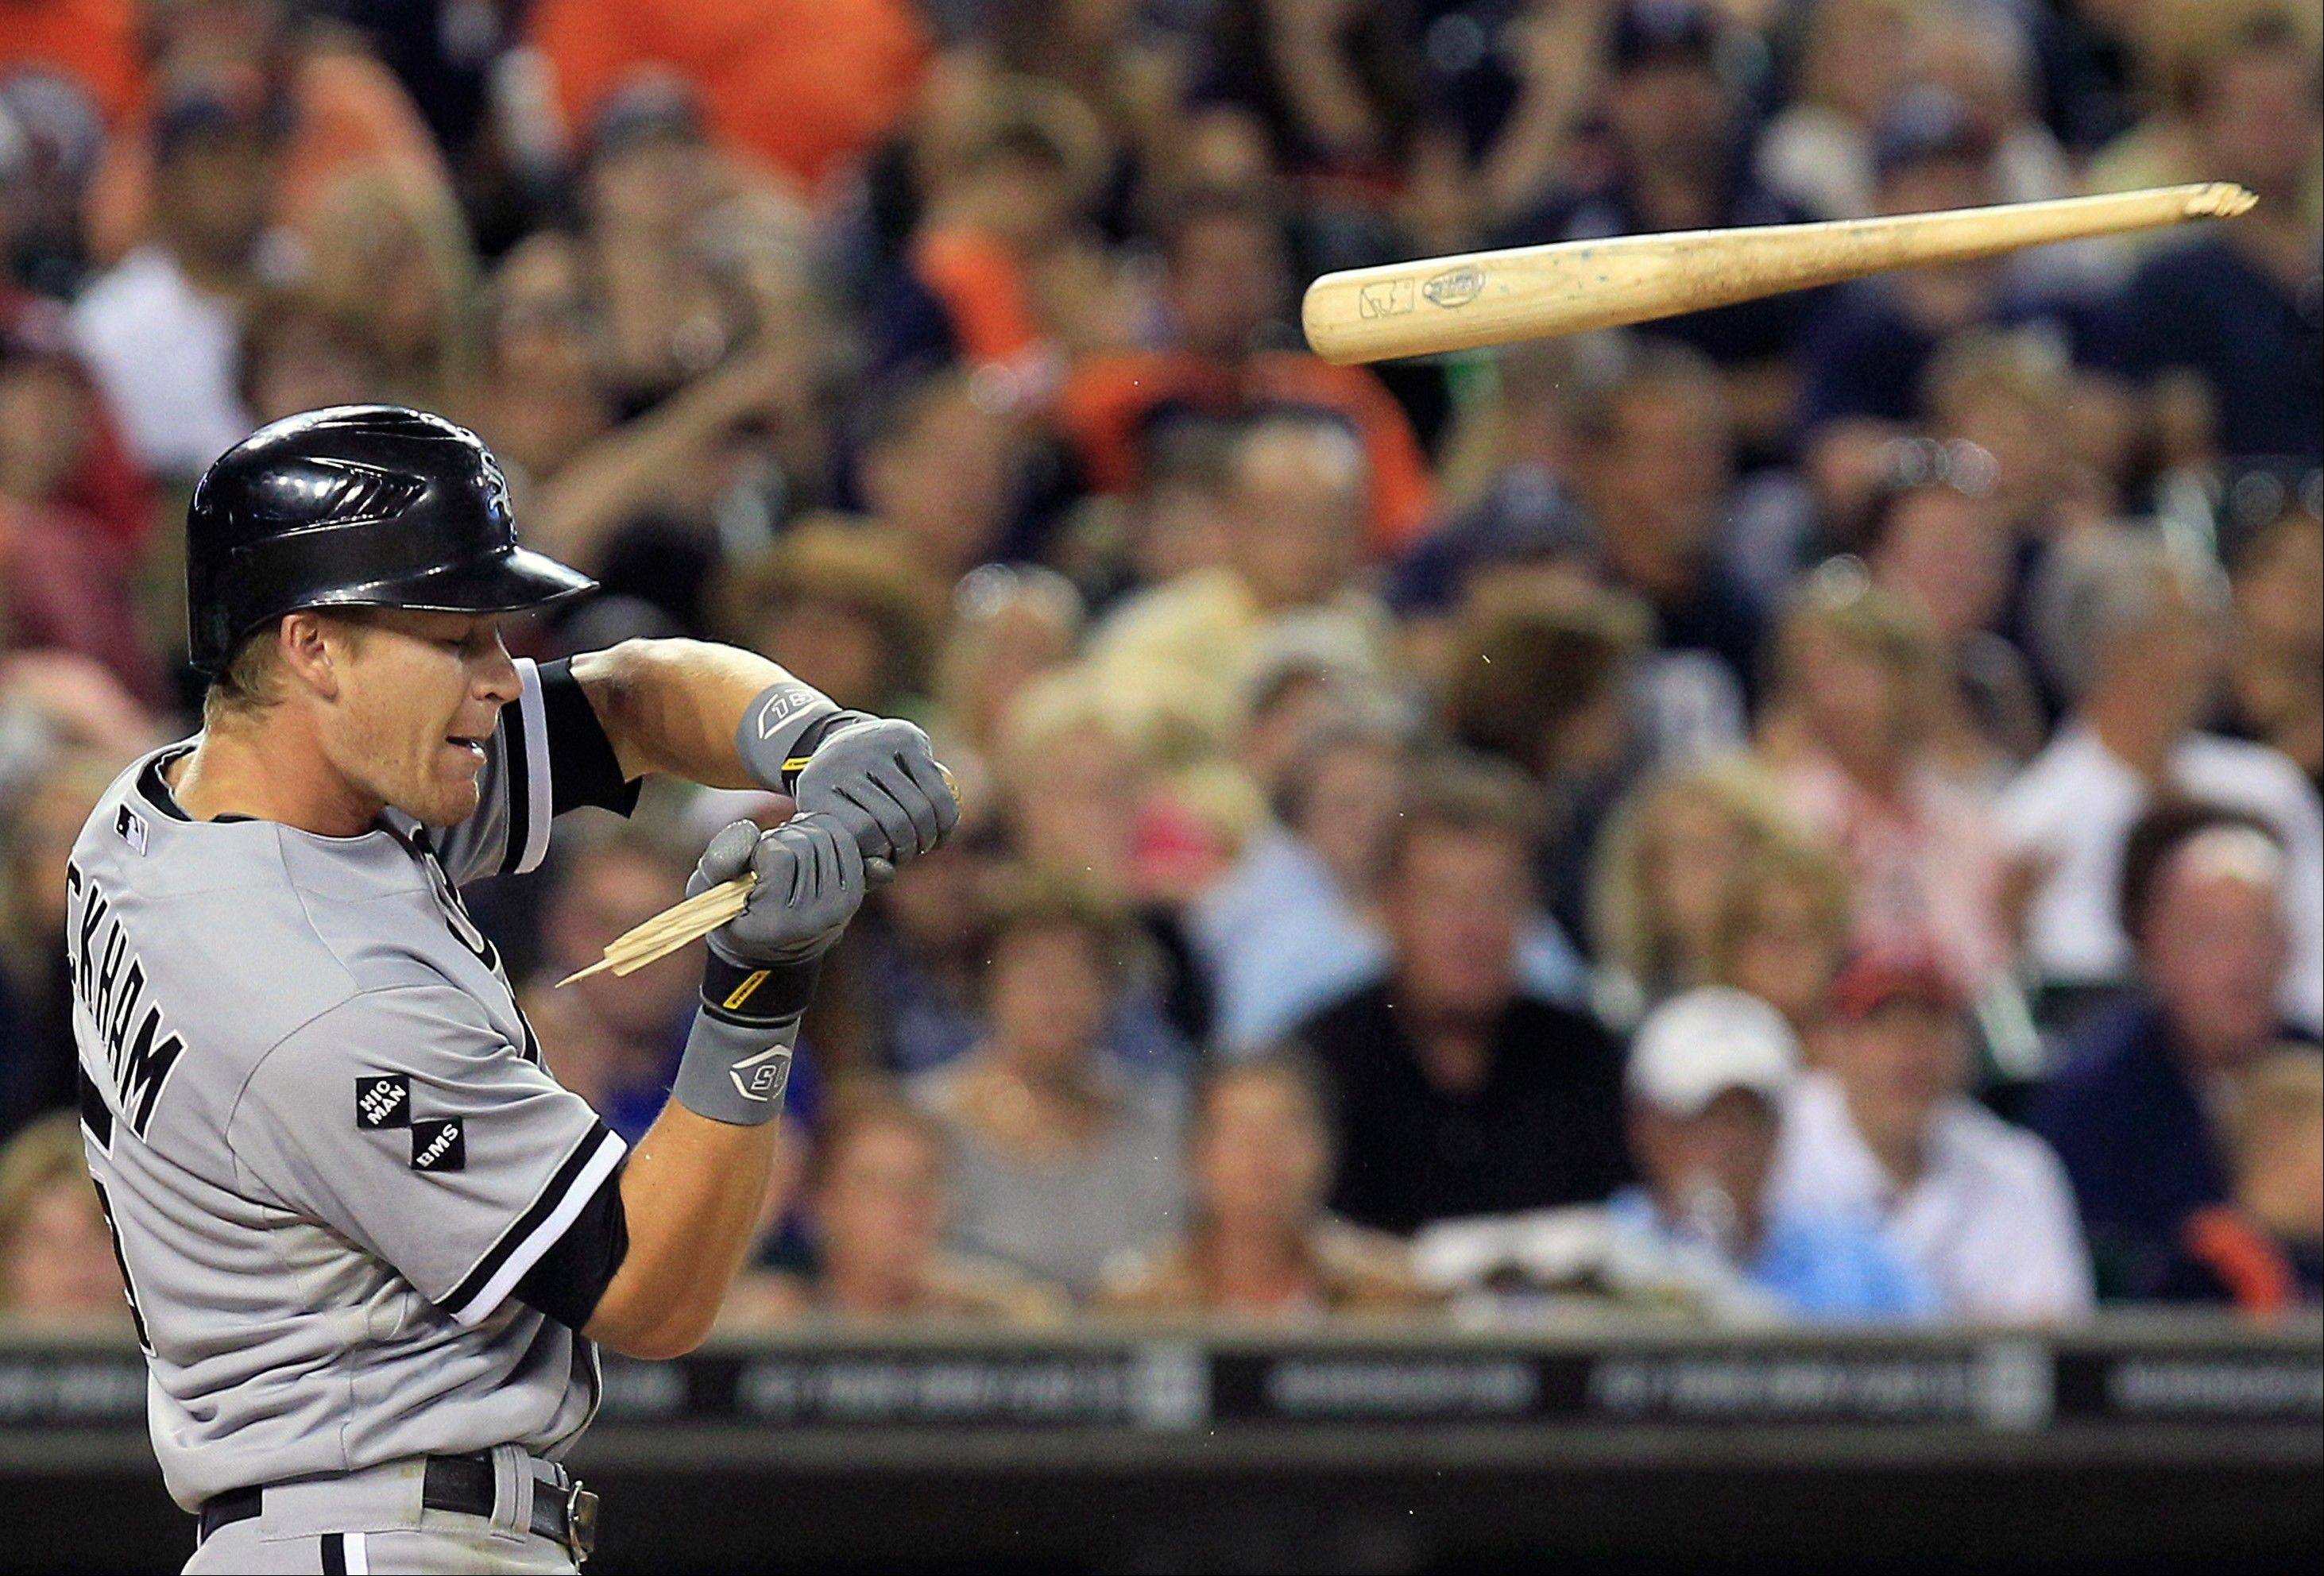 Gordon Beckham has been struggling at the plate for the White Sox, going just 4 for 33 over the last 10 games. Here he breaks his bat on a checked swing against the Tigers last week.